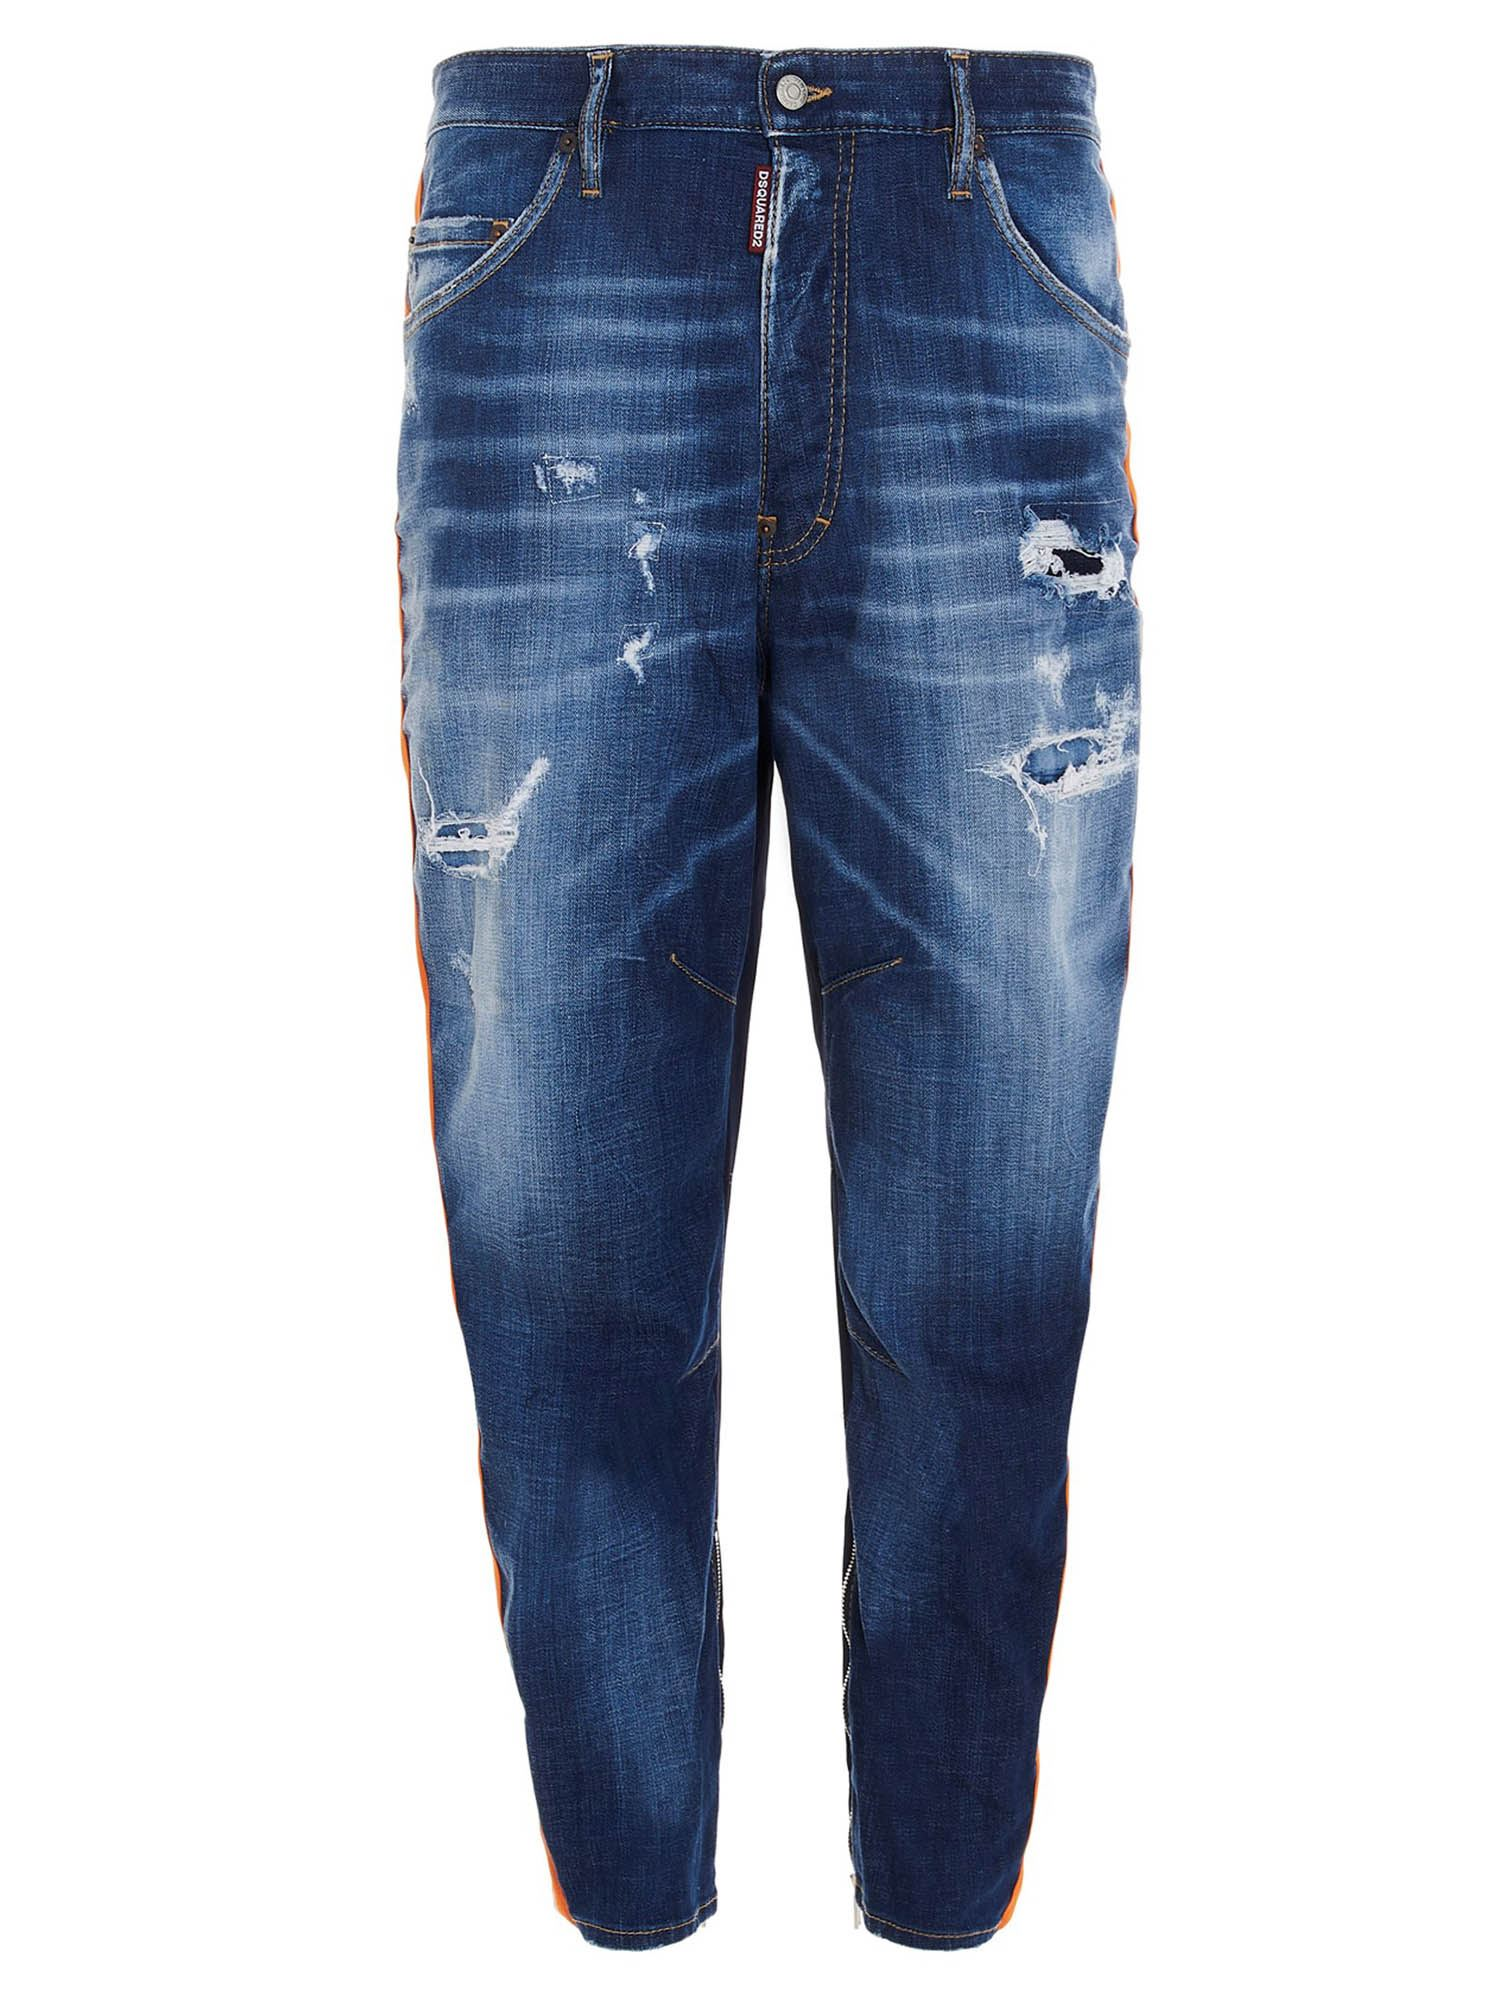 Dsquared2 COMBAT LIGHT WASH JEANS IN BLUE